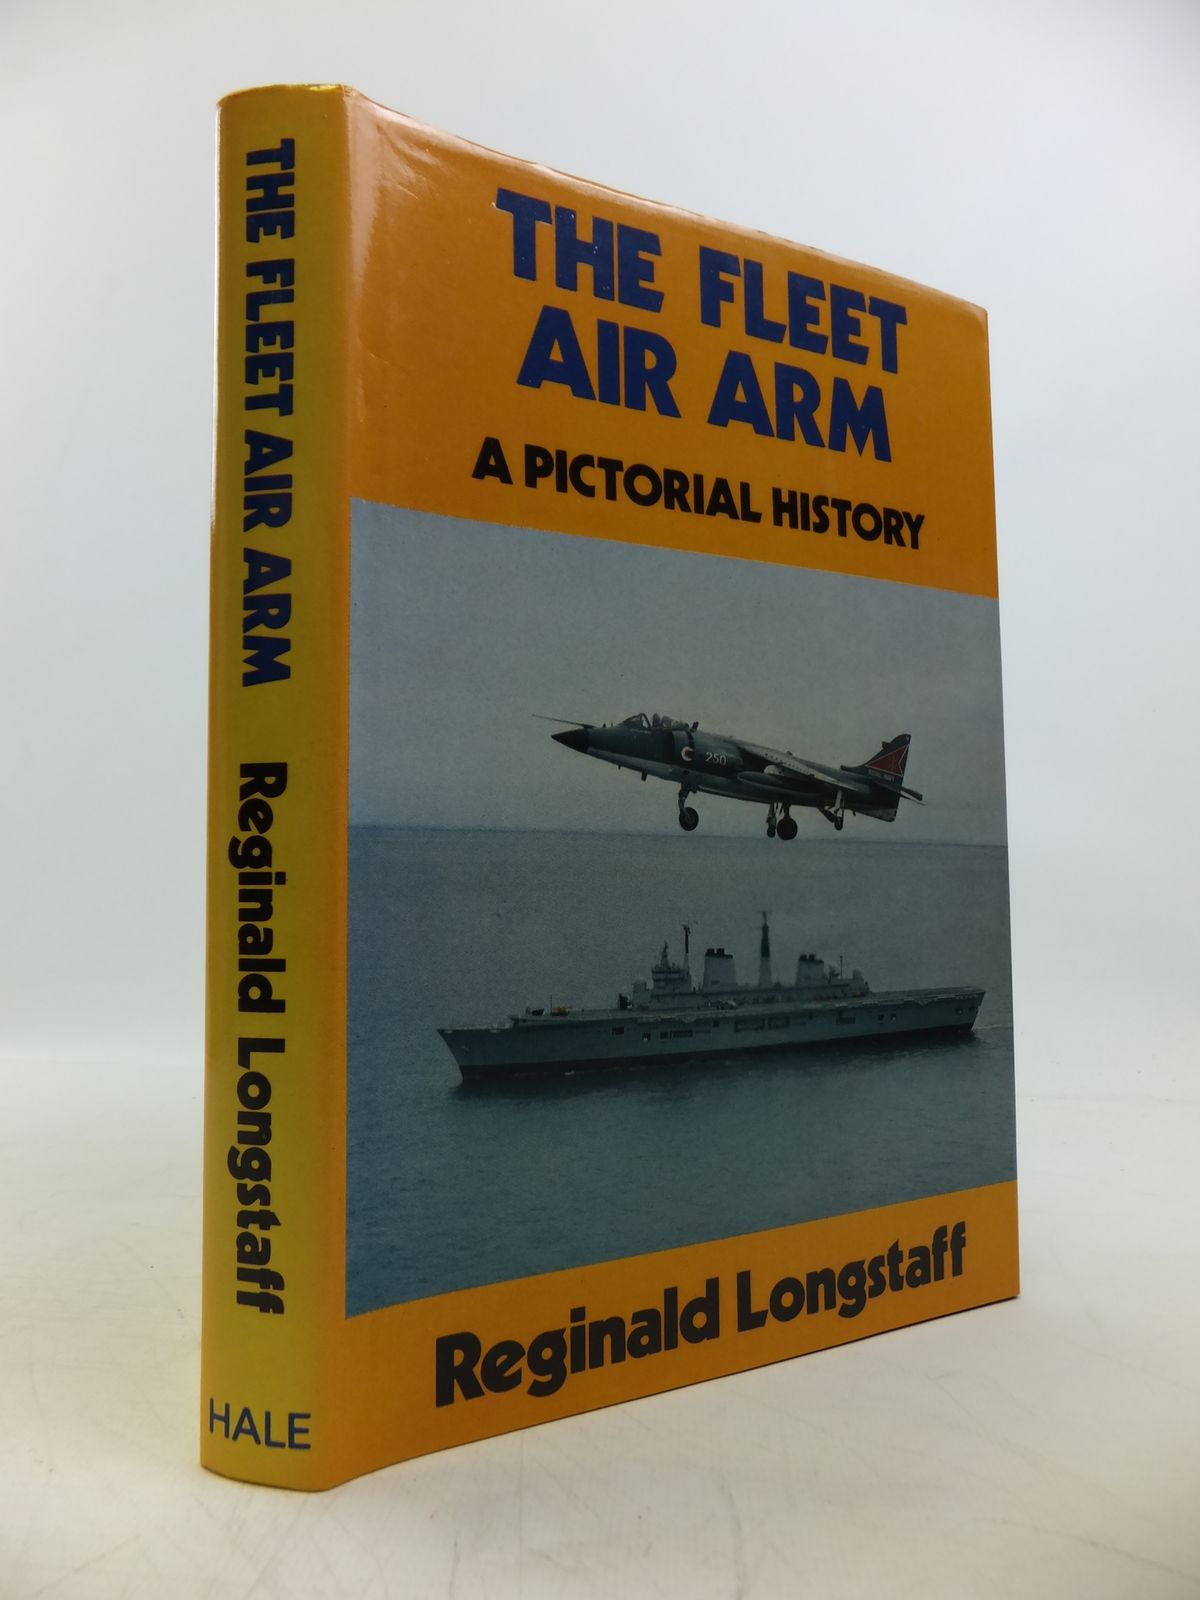 Photo of THE FLEET AIR ARM A PICTORIAL HISTORY written by Longstaff, Reginald published by Robert Hale Limited (STOCK CODE: 1811495)  for sale by Stella & Rose's Books